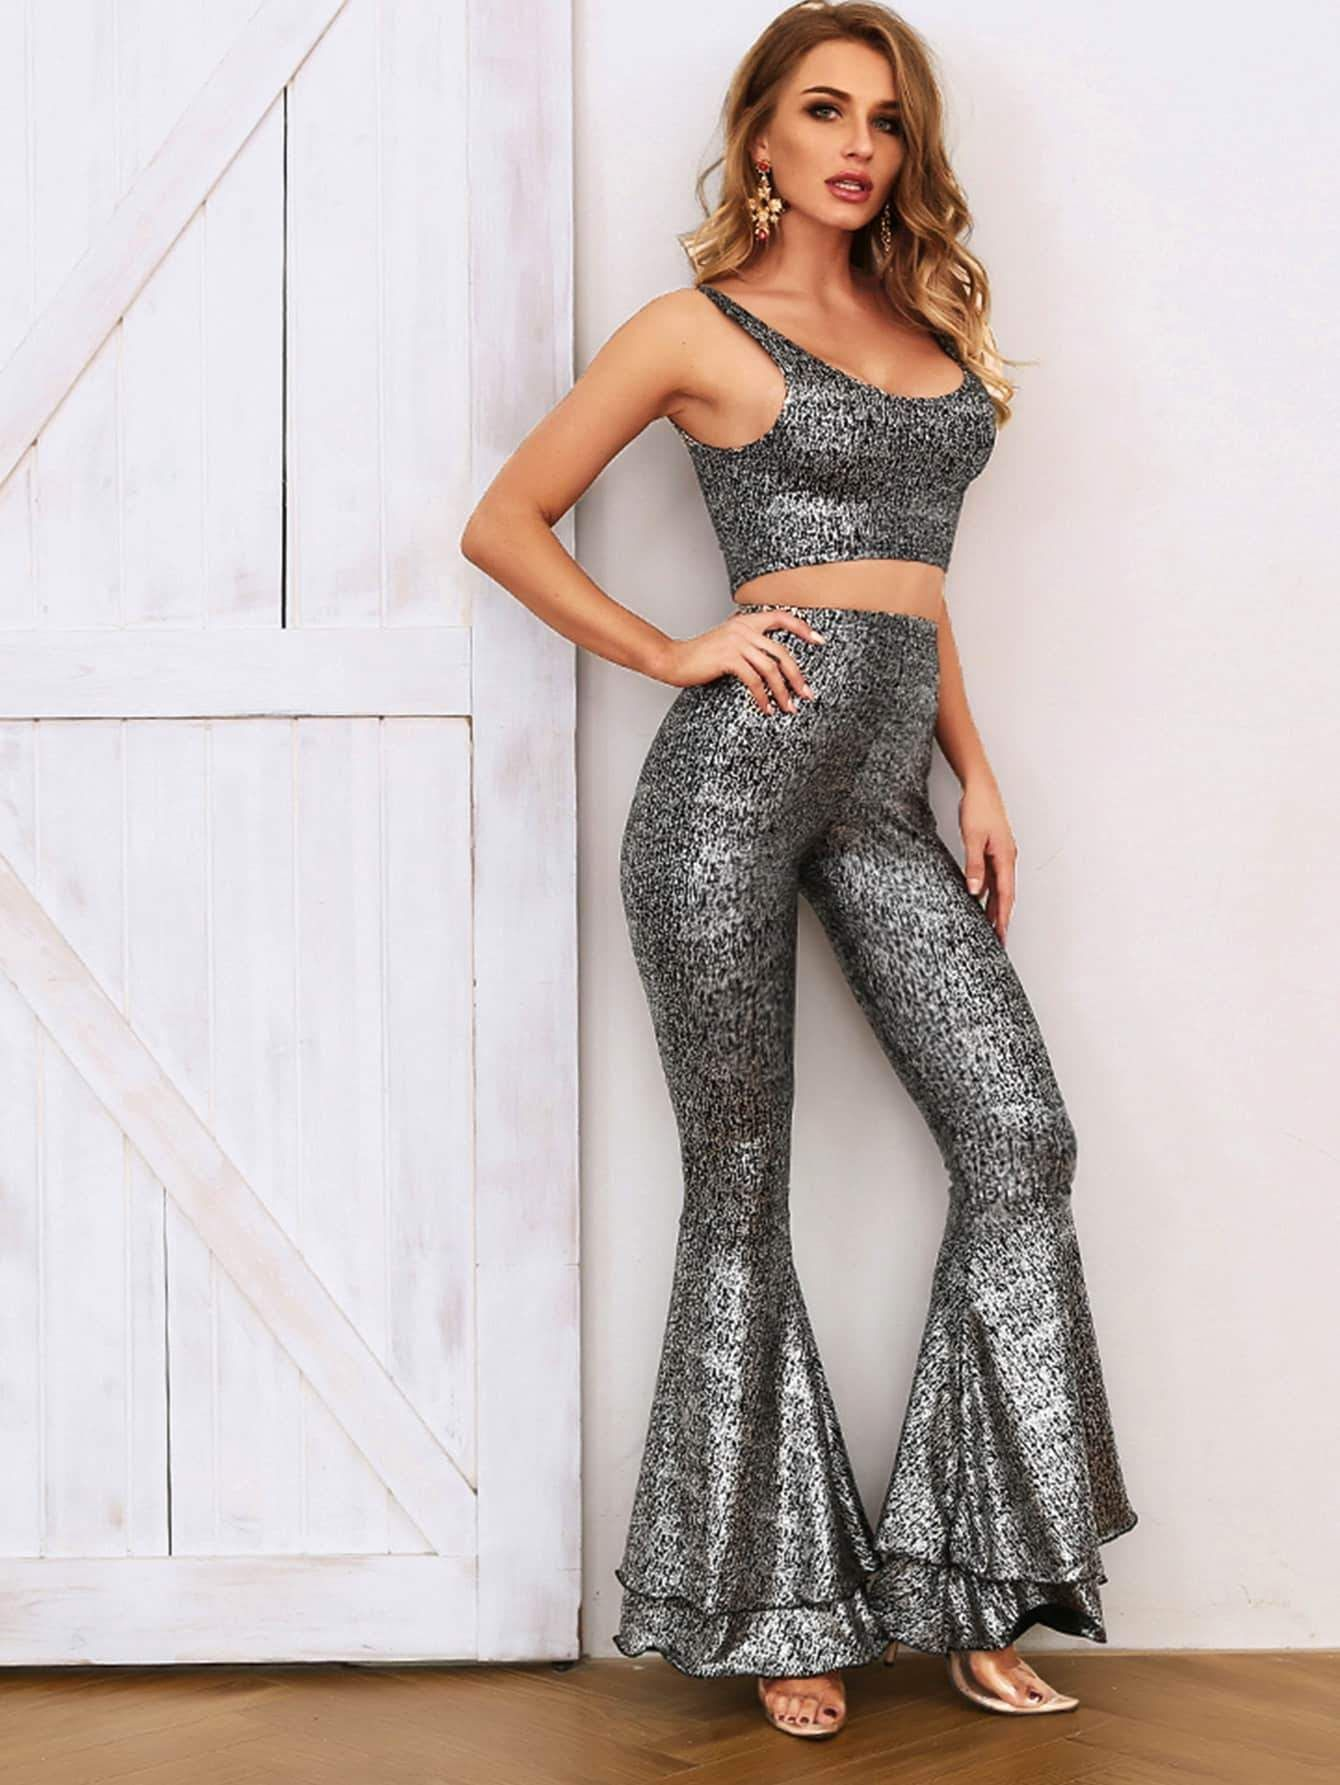 9397e12f6a32 Thick Strap Glitter Top & Layered Flare Pants Set - Popviva #coord  #coordset